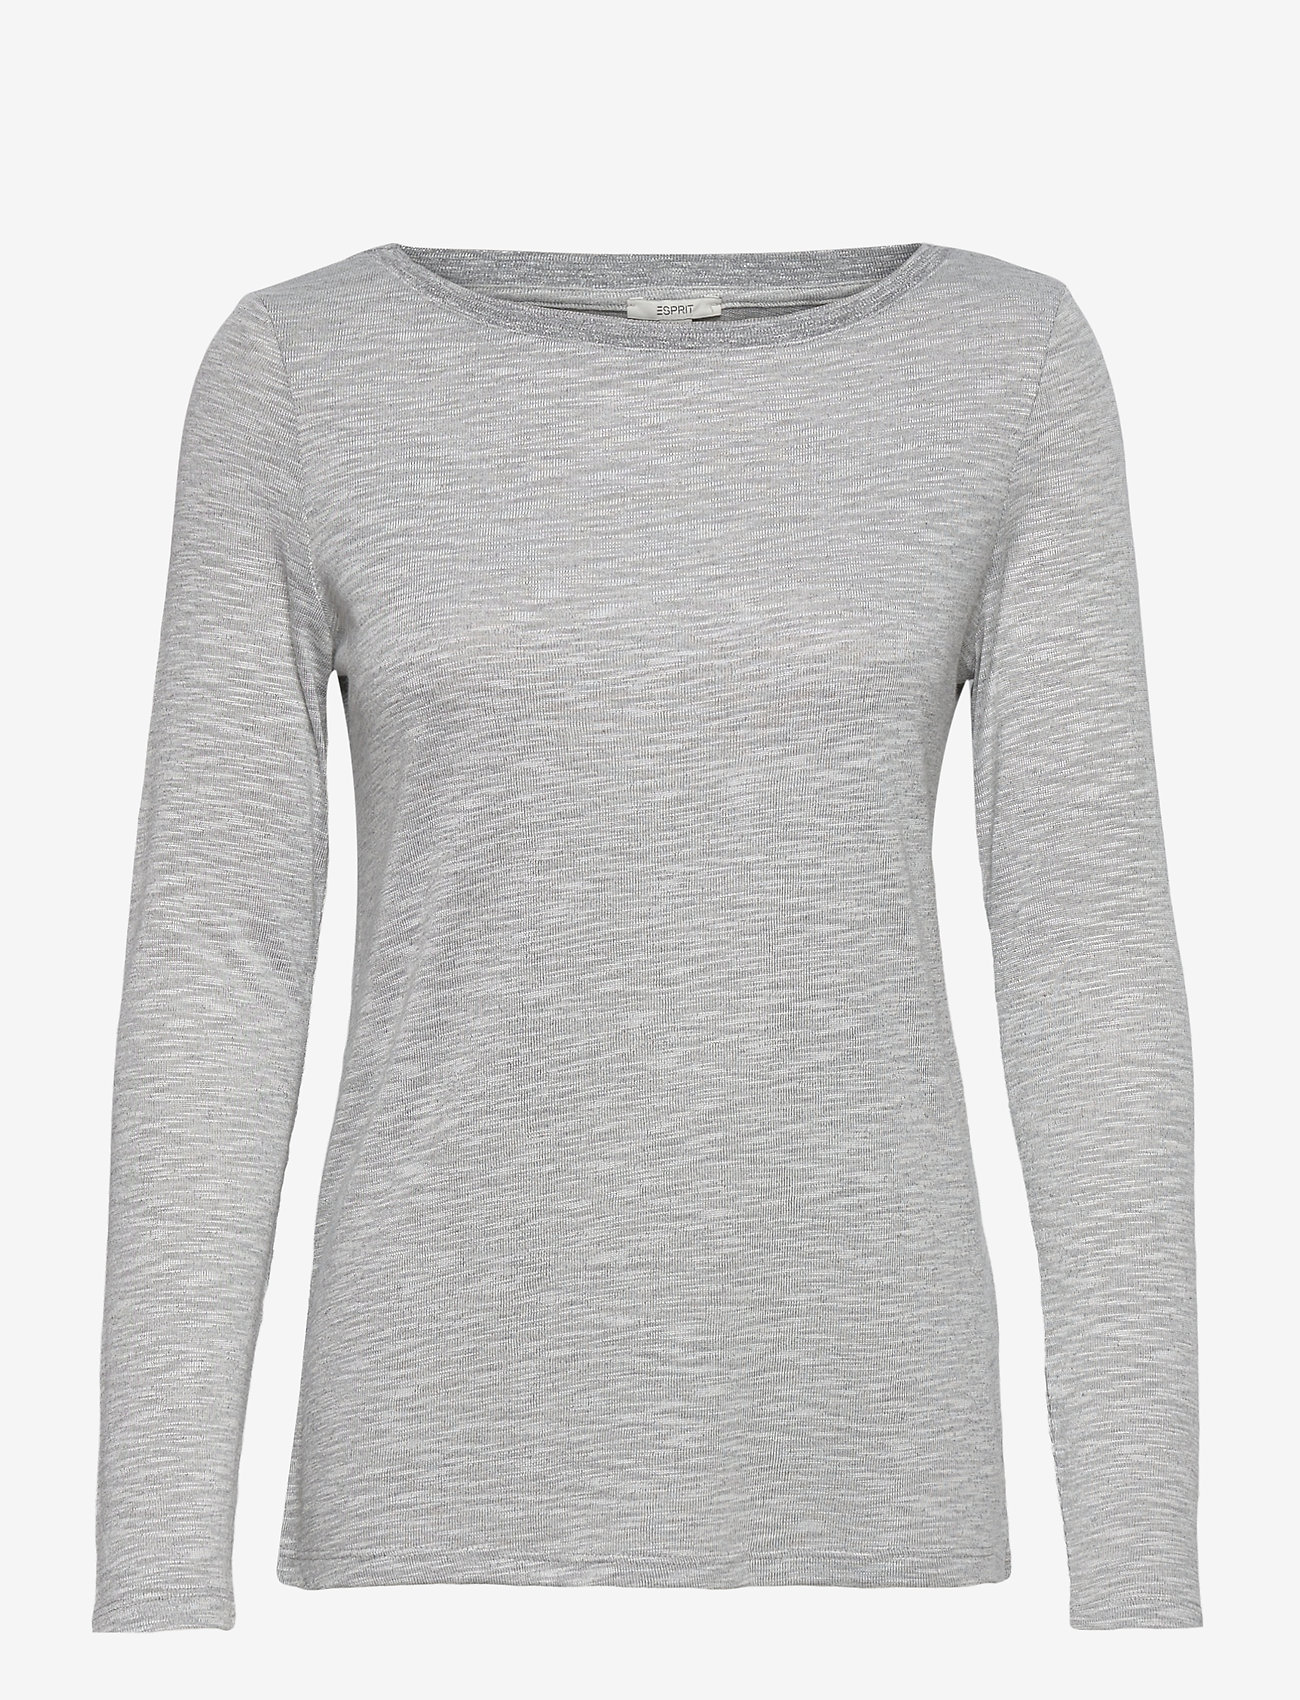 Esprit Casual - T-Shirts - long-sleeved tops - light grey 5 - 0